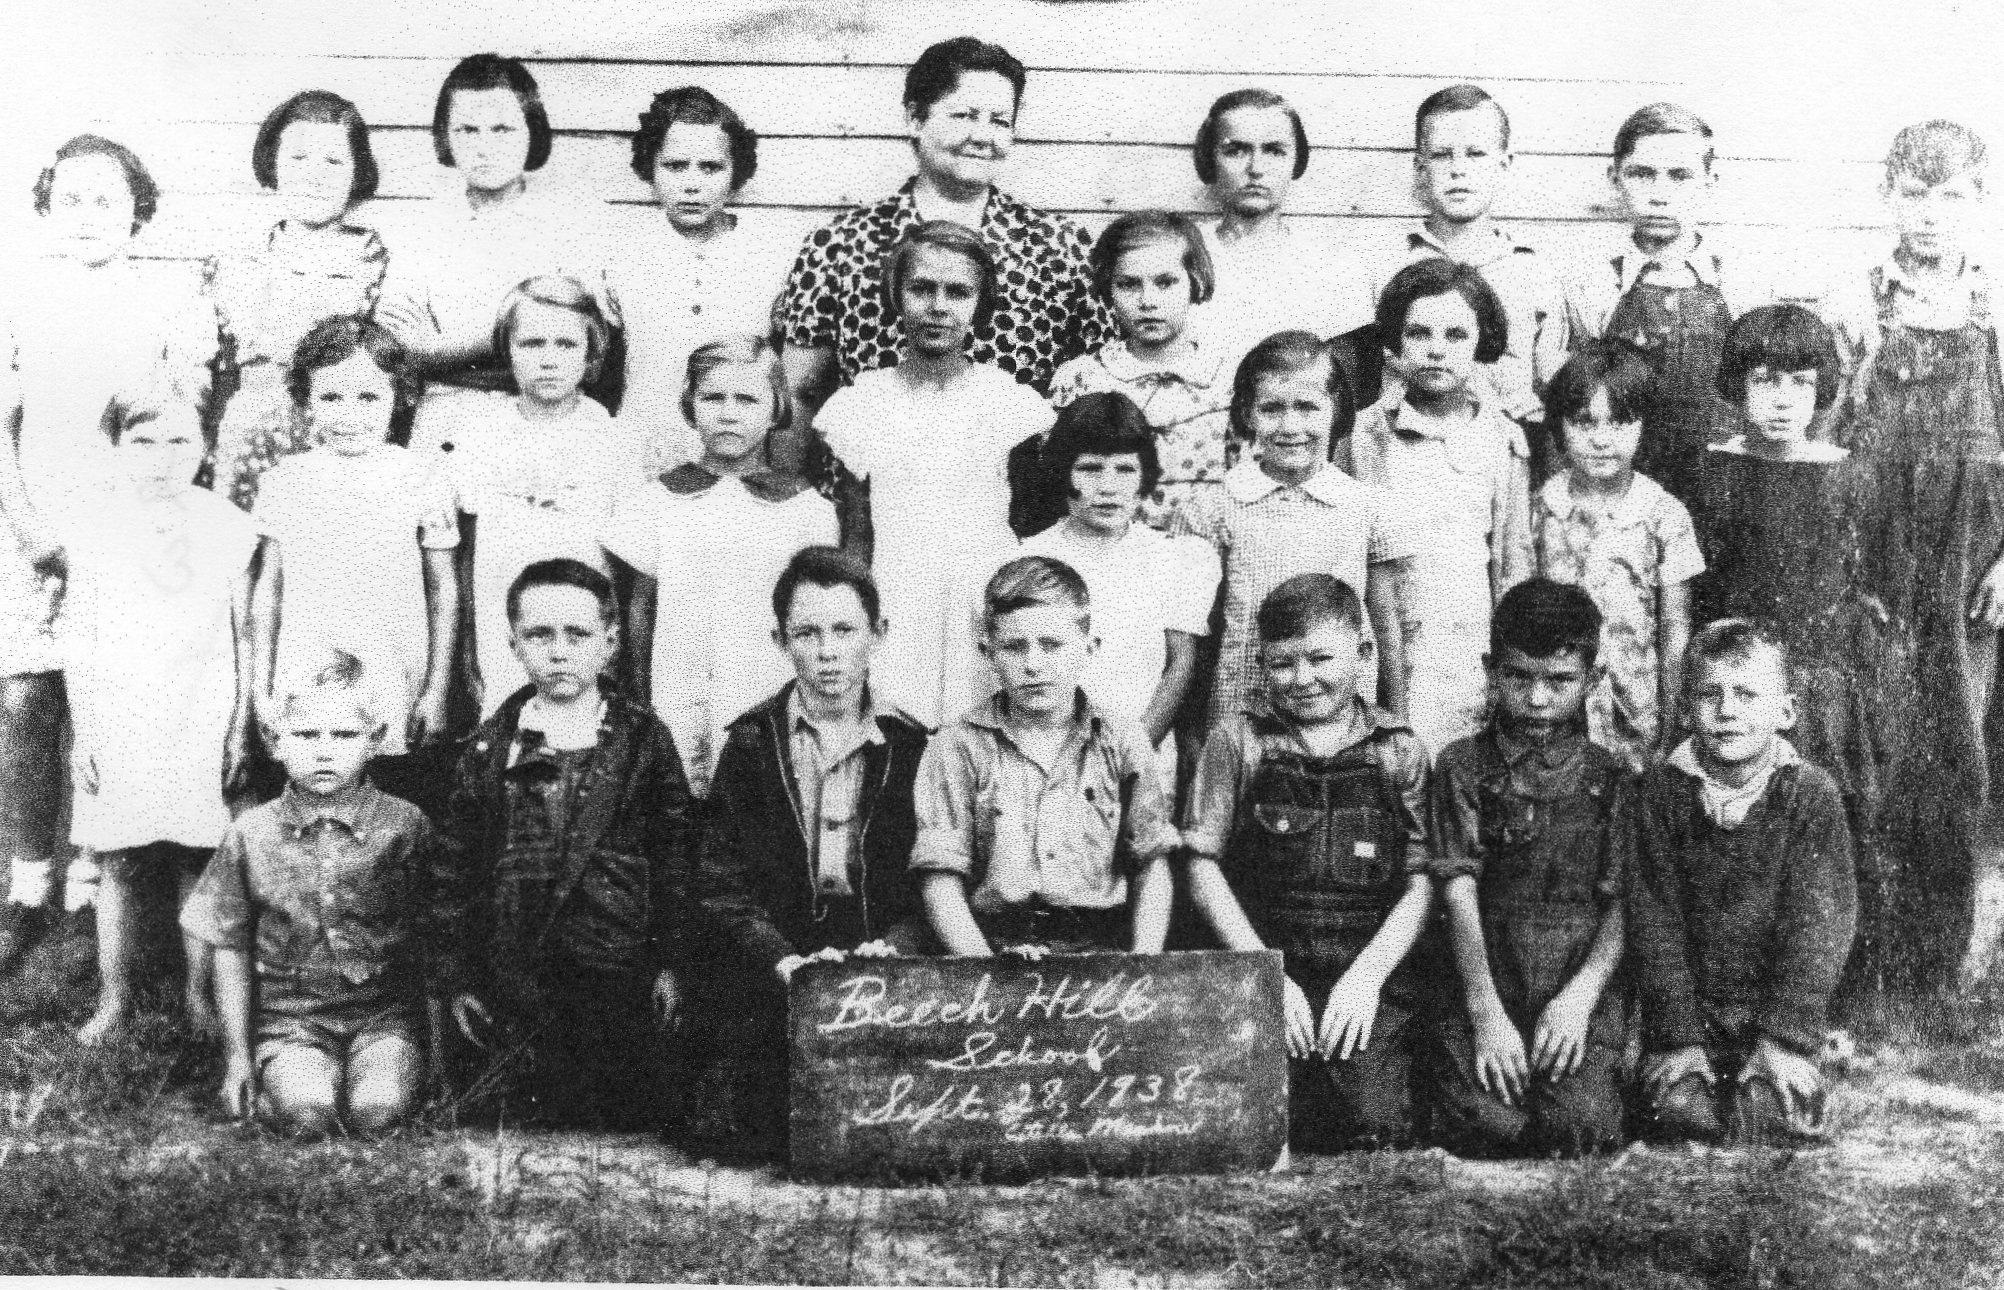 Beech Hill School, Hurricane Mills, Tennessee 1938